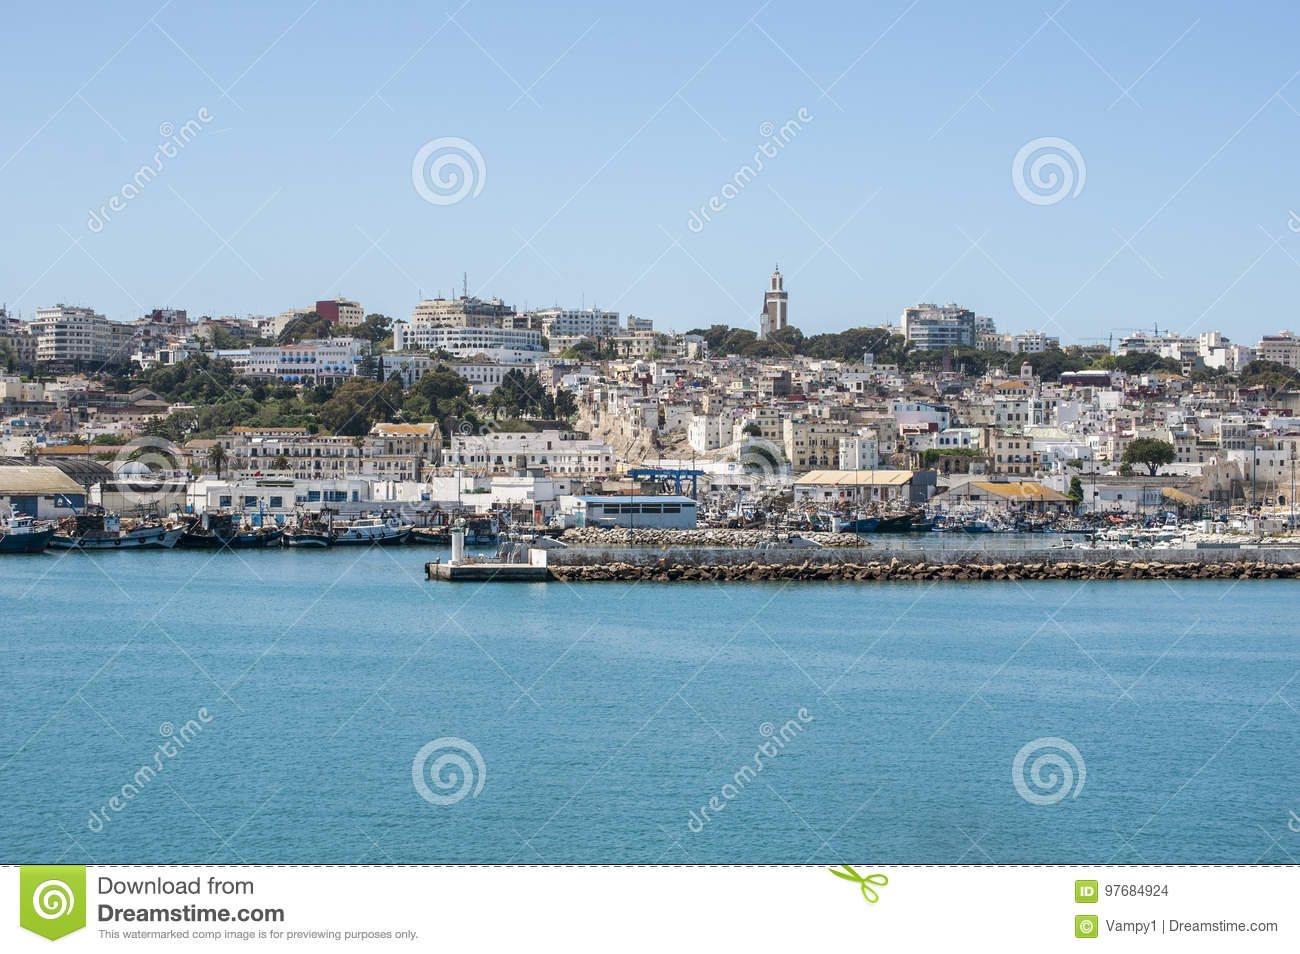 Tangier tangiers tanger morocco africa north africa - Moroccan port on the strait of gibraltar ...